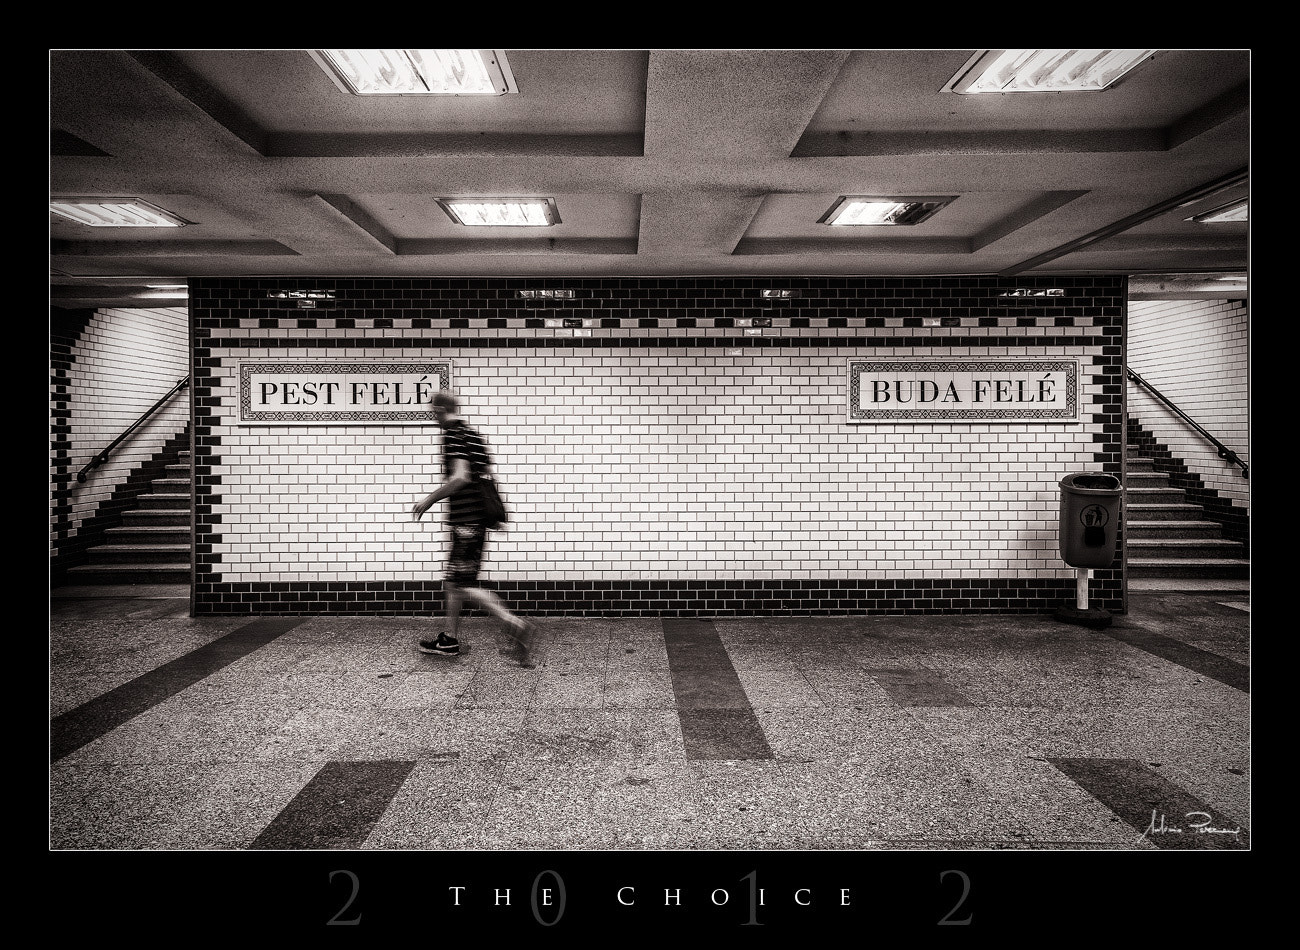 Photograph The Choice by Antonio Perrone on 500px